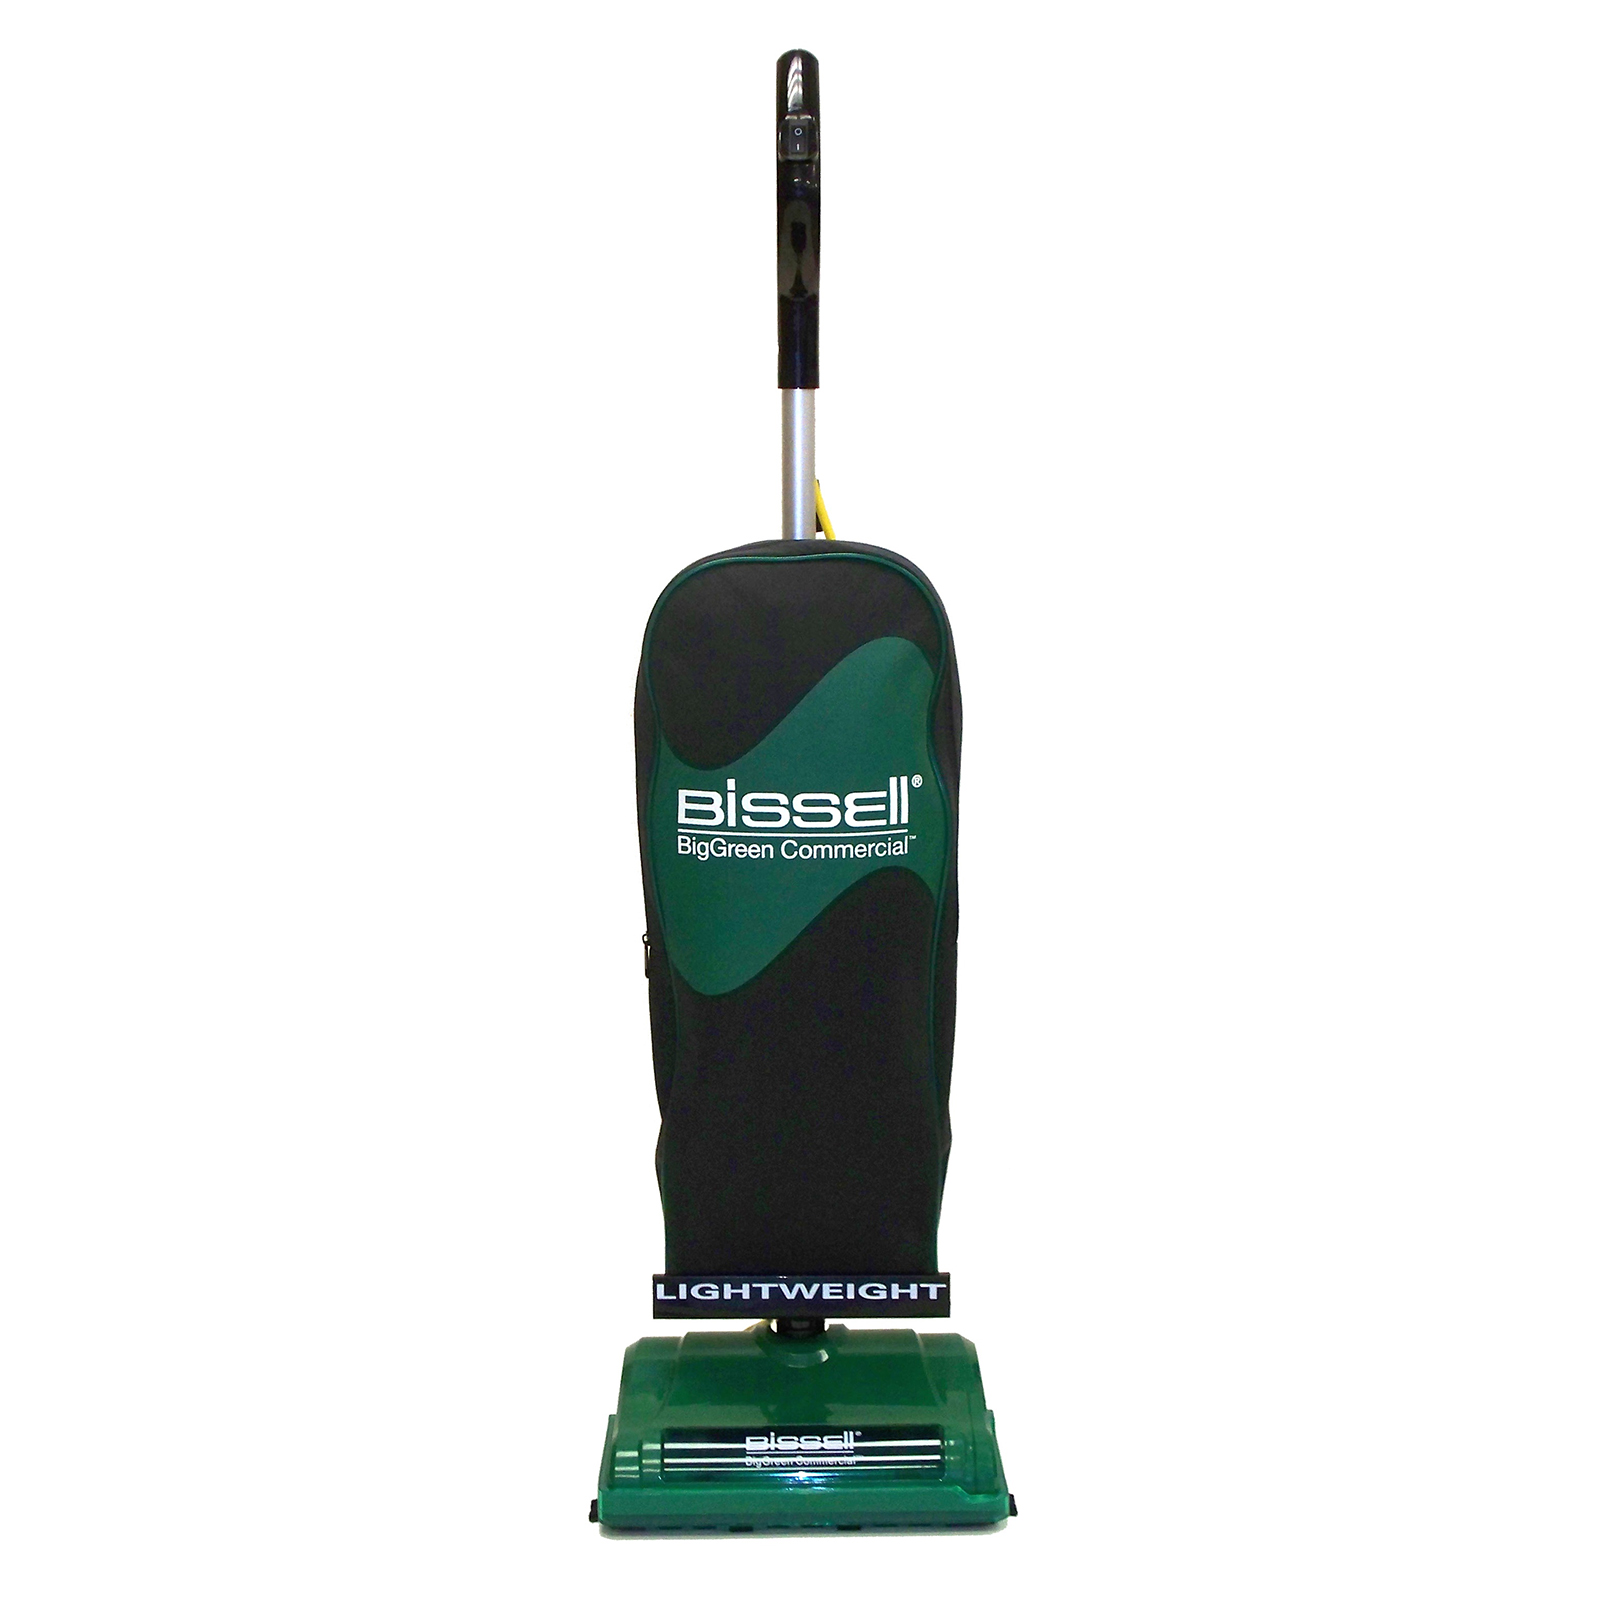 Bissell Big Green Commercial BGU8000 vacuum cleaner